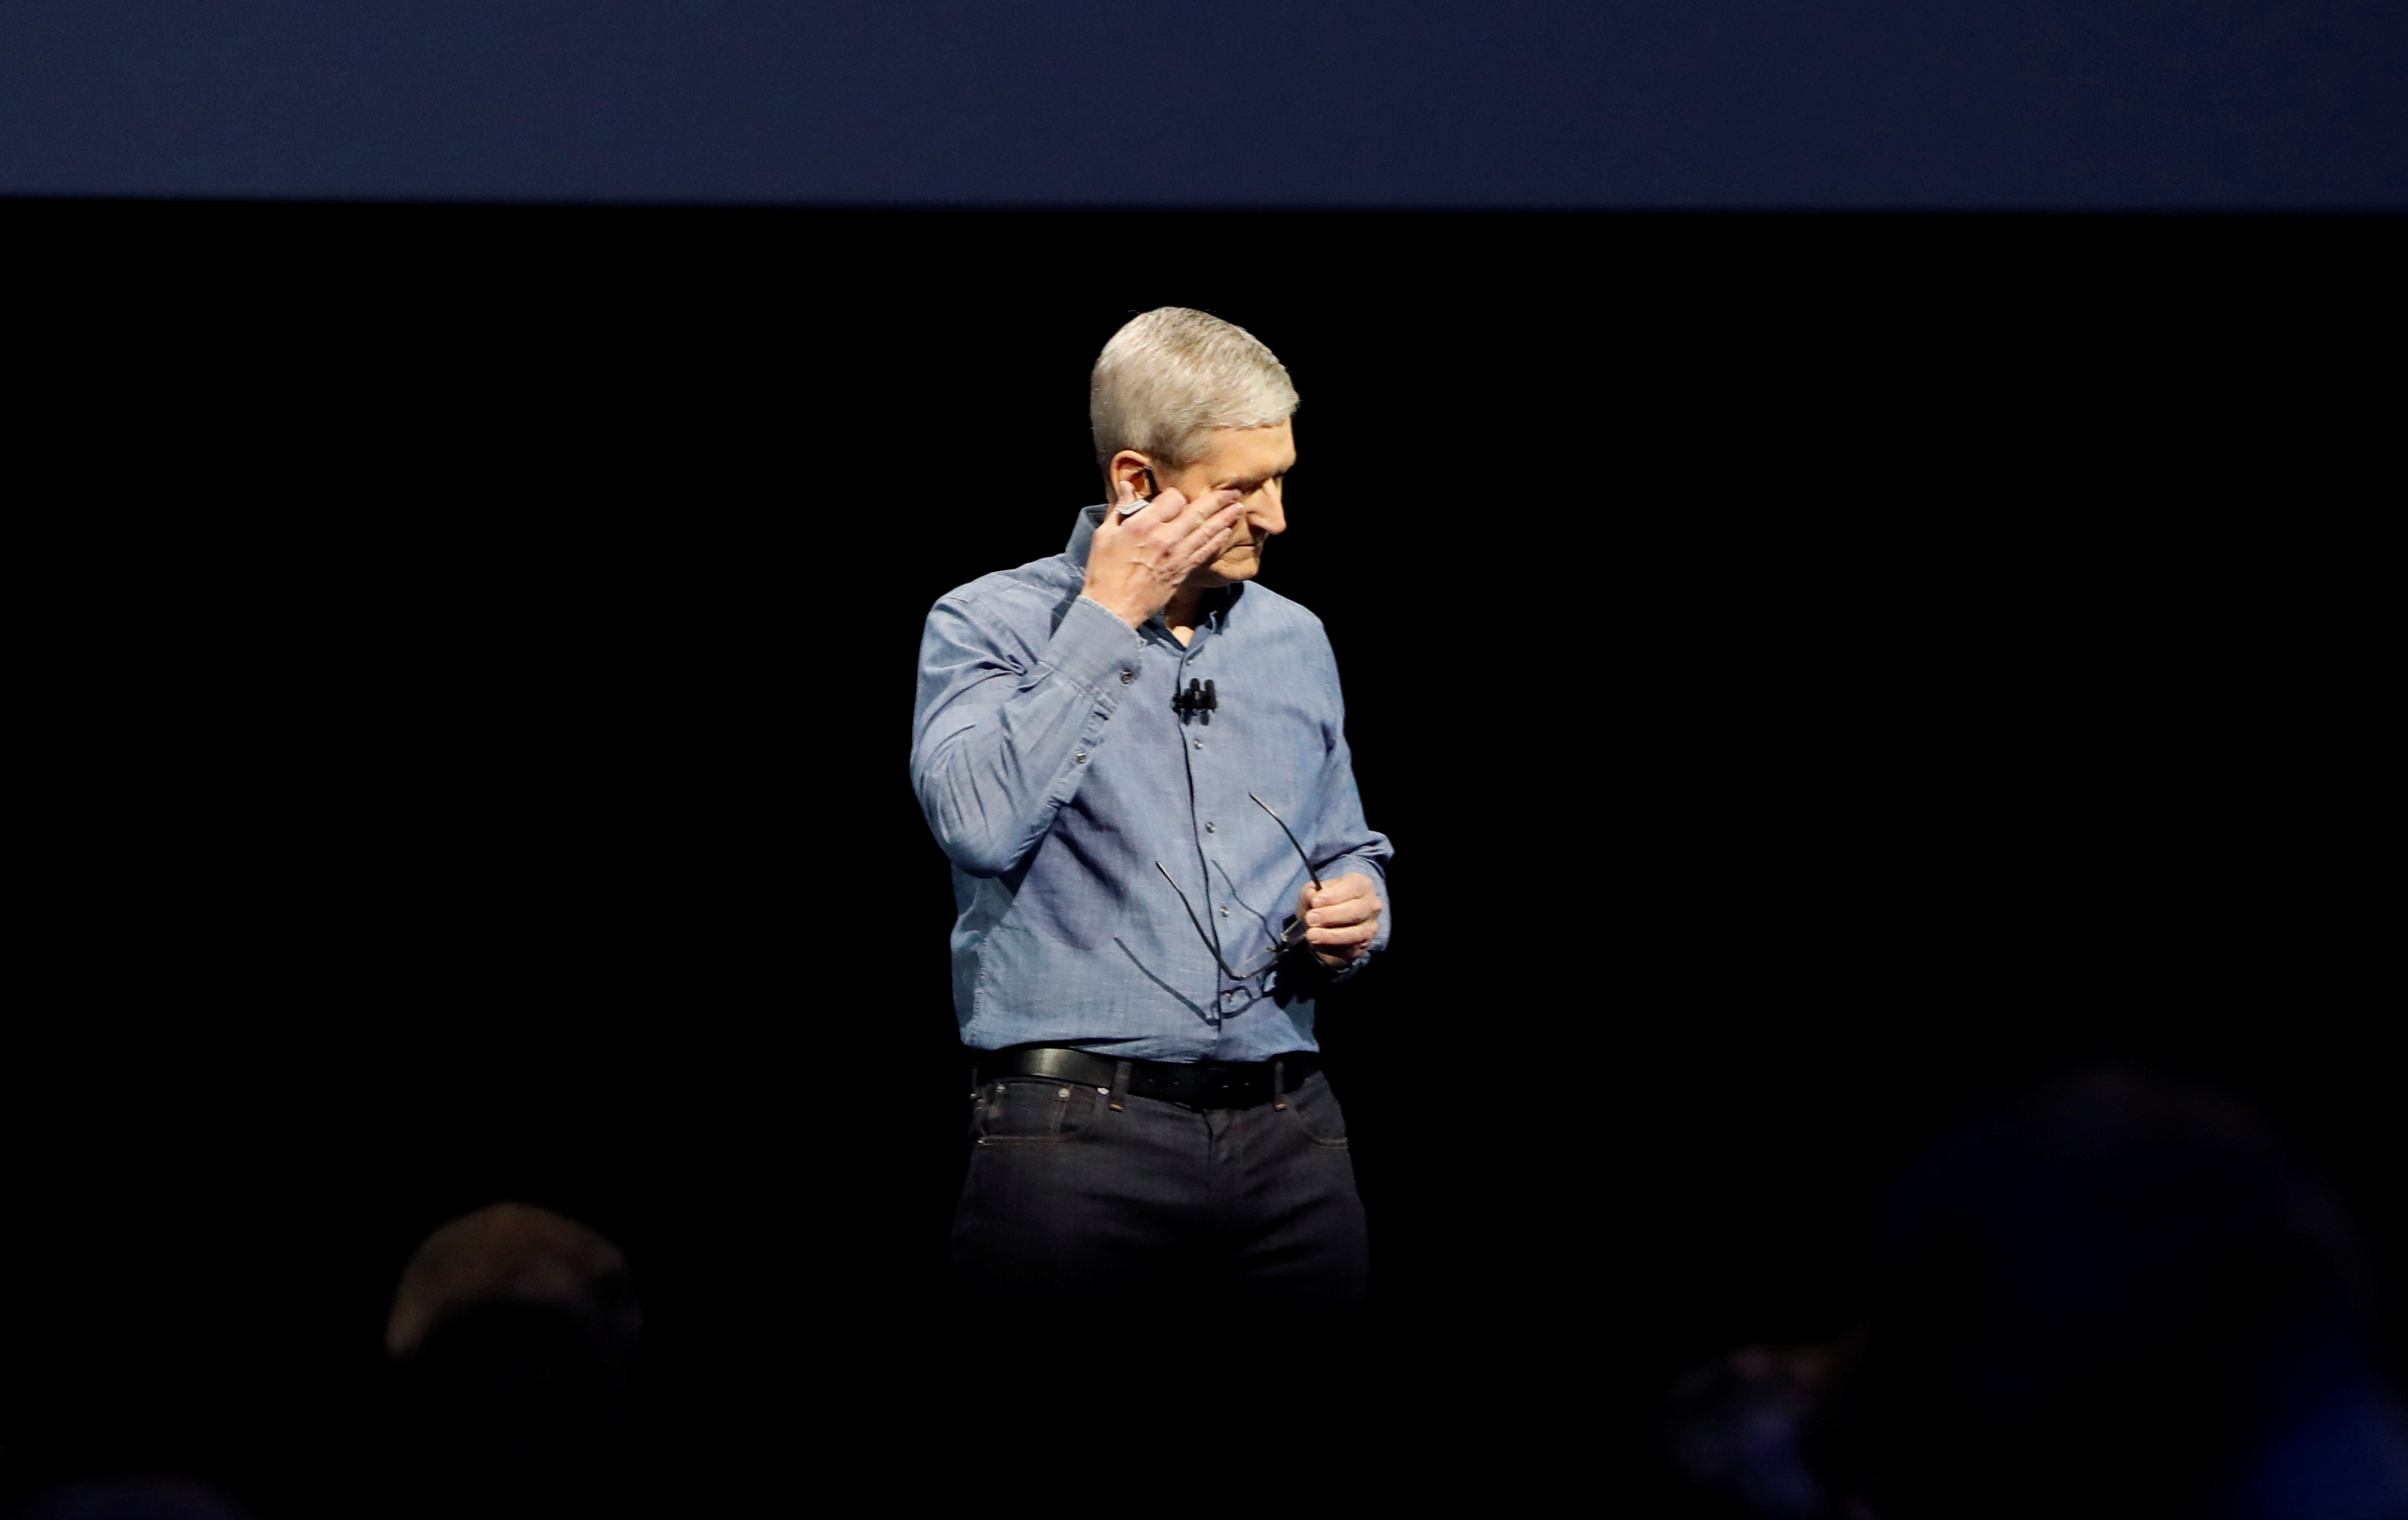 Apple Inc. CEO Tim Cook wipes his eyes after leading a moment of silence for the victims of the attack in Orlando as he opens the company's World Wide Developers Conference in San Francisco, California